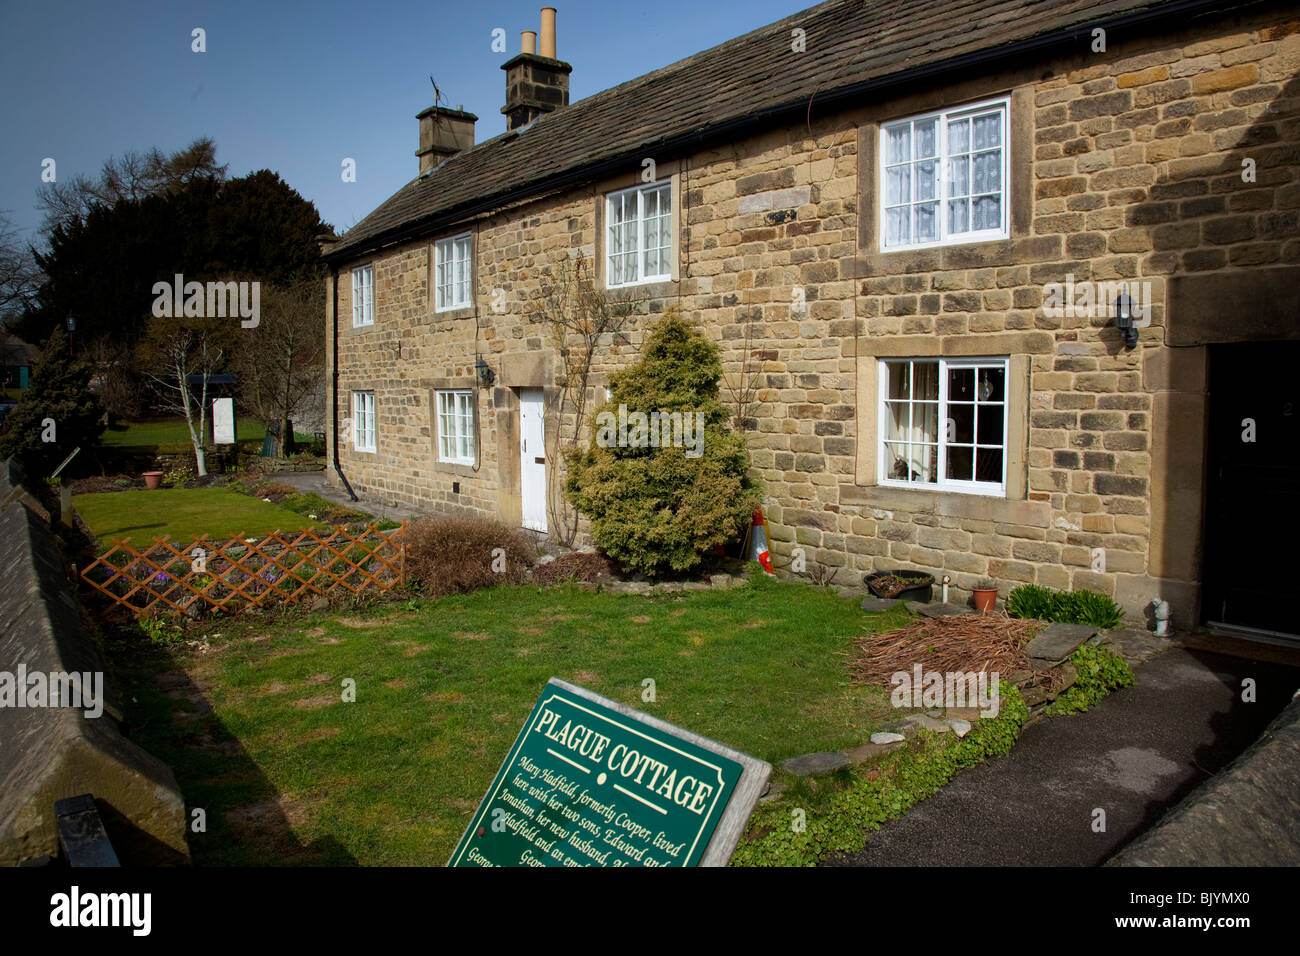 Plague Cottages in the village of Eyam, Derbyshire, England, UK. - Stock Image